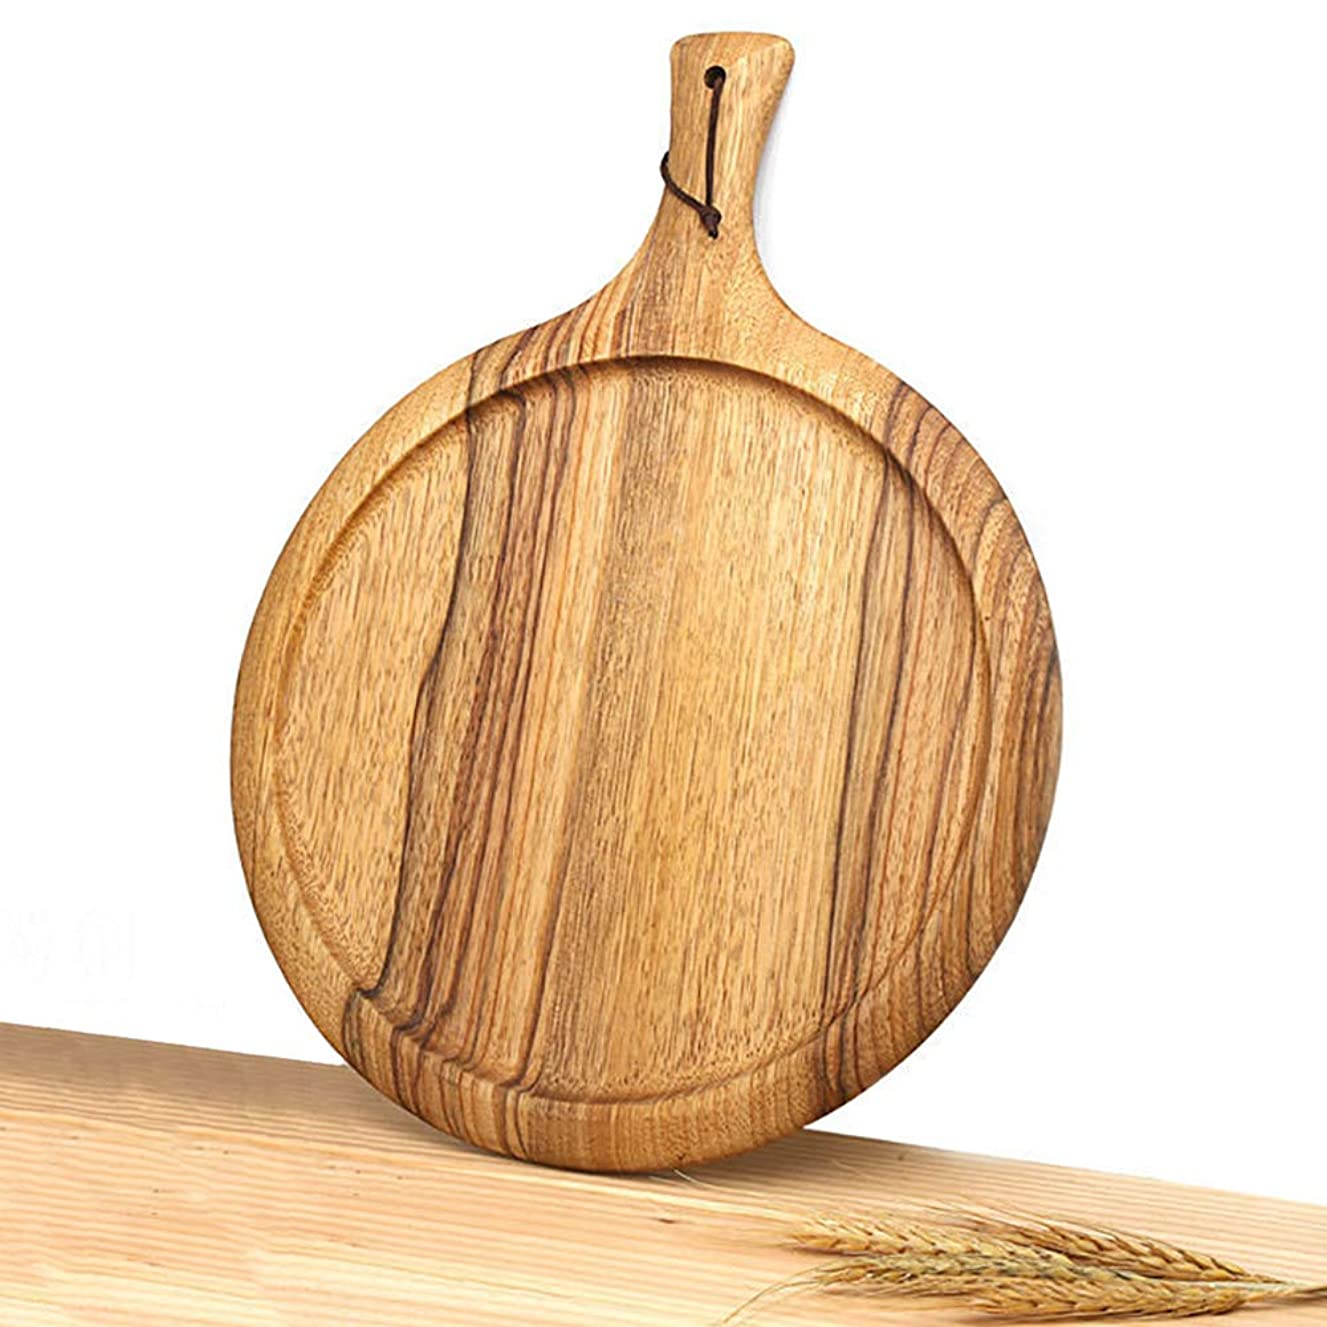 CABNT Round Chopping Board Zebra Wood, Nordic Serving Tray Cutting Board with Handle Pizza Fruit Bread Board for Vegetables-a